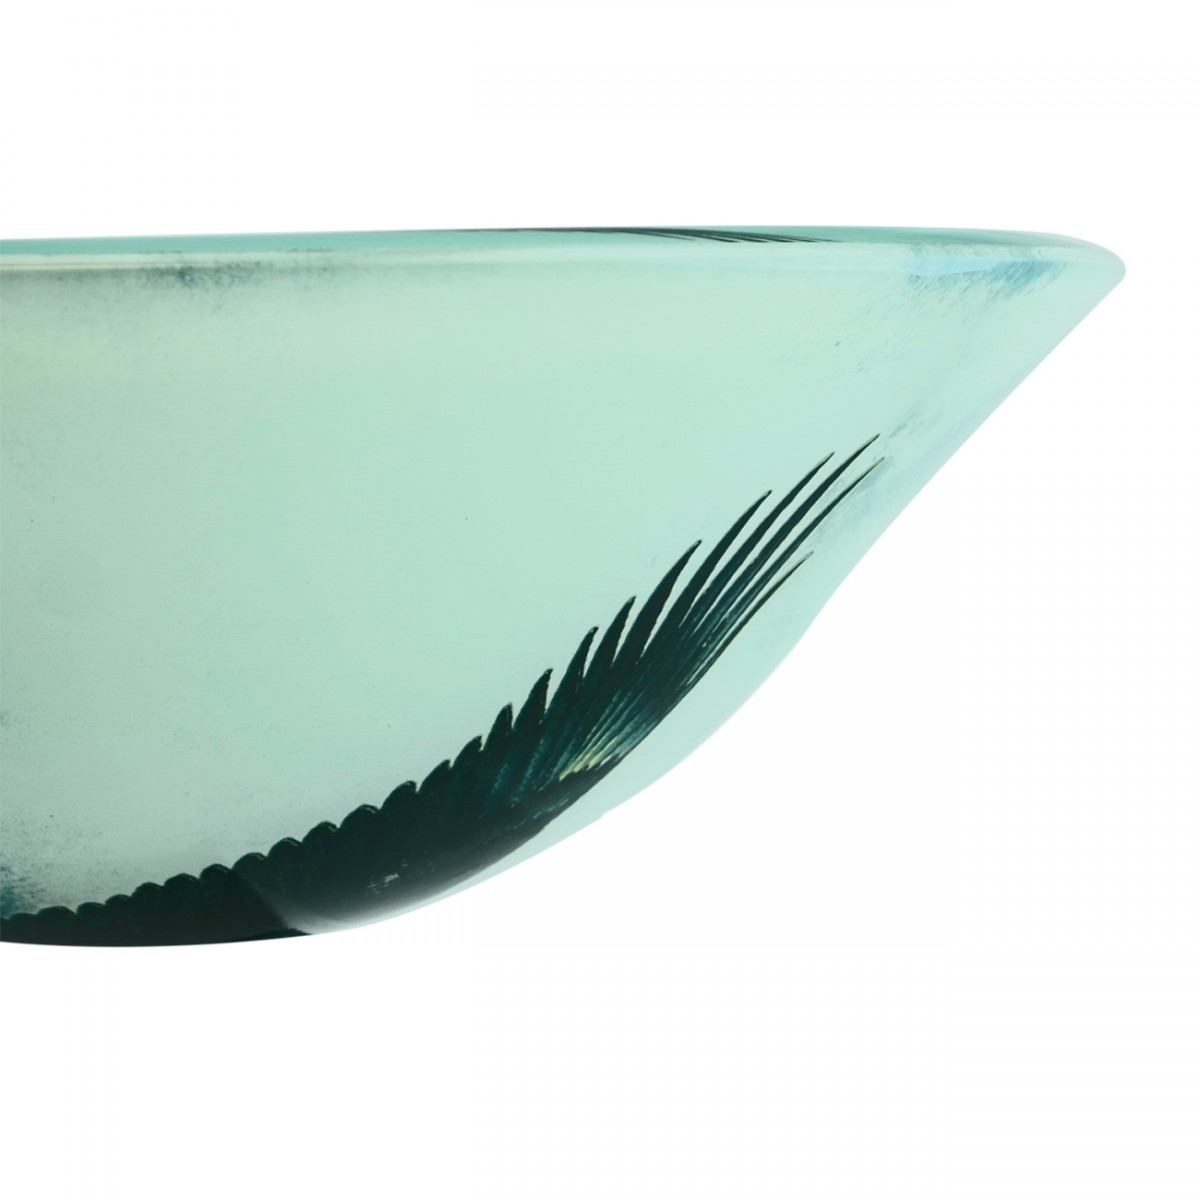 Eagle Tempered Glass Vessel Sink with Drain, Patriotic Double Layer Bowl Sink bathroom vessel sinks Countertop vessel sink Glass Bathroom Sink